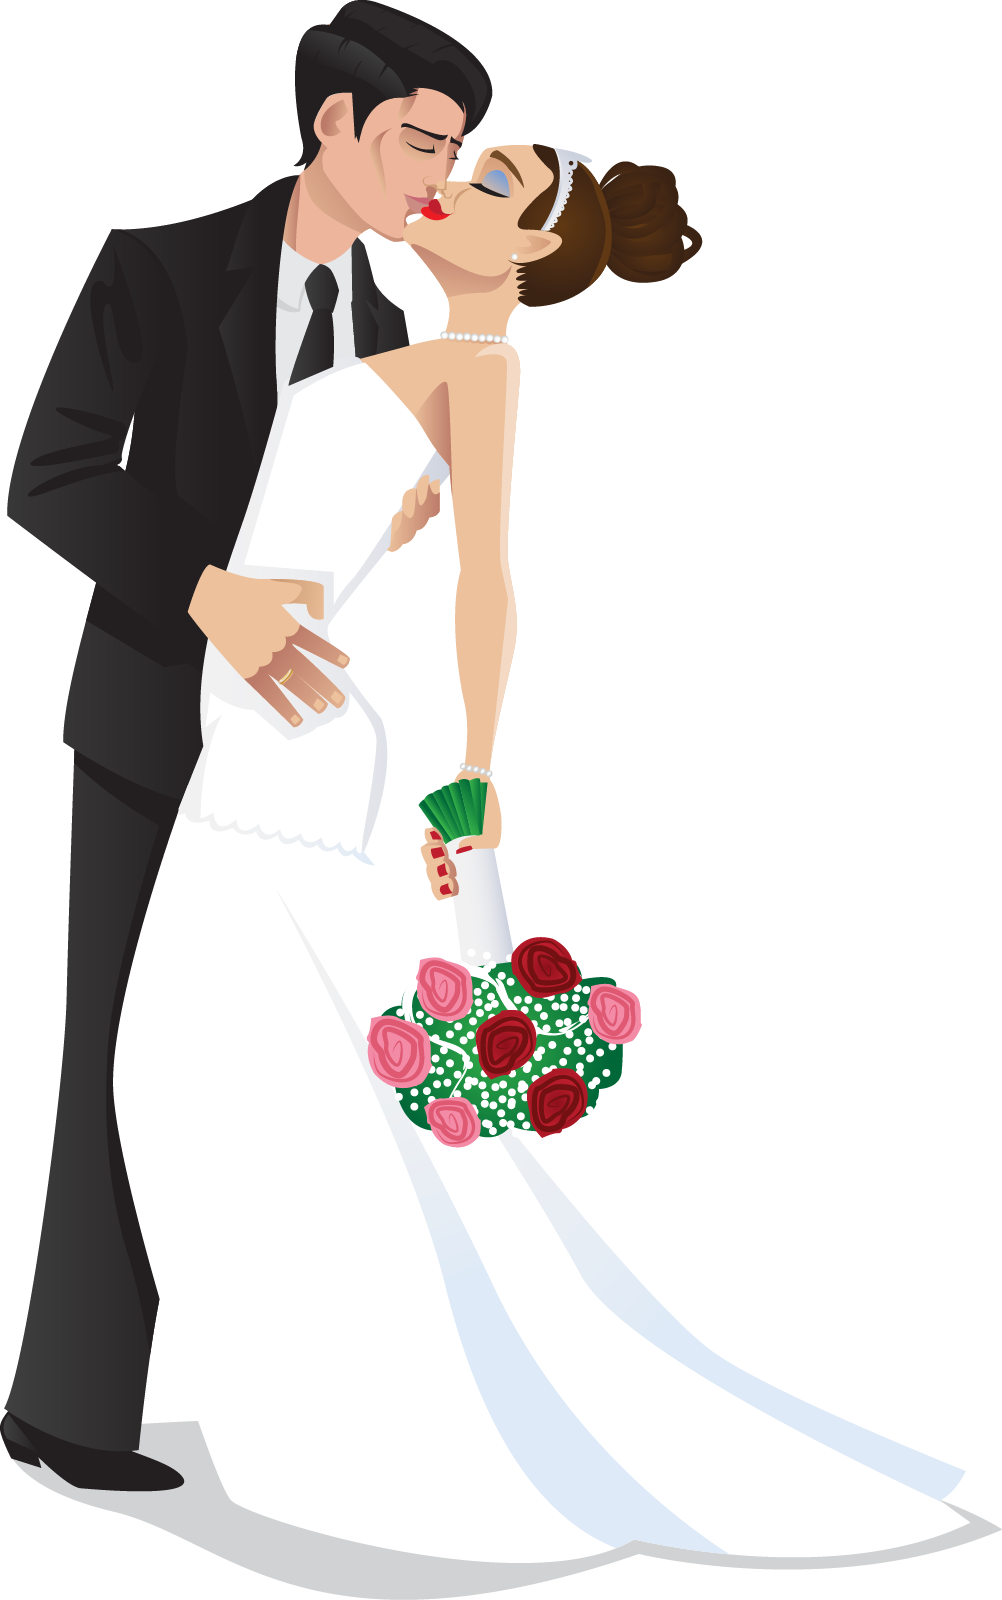 grooms in nature clipart clipground bride and groom clipart black and white bride and groom clipart silhouette softball